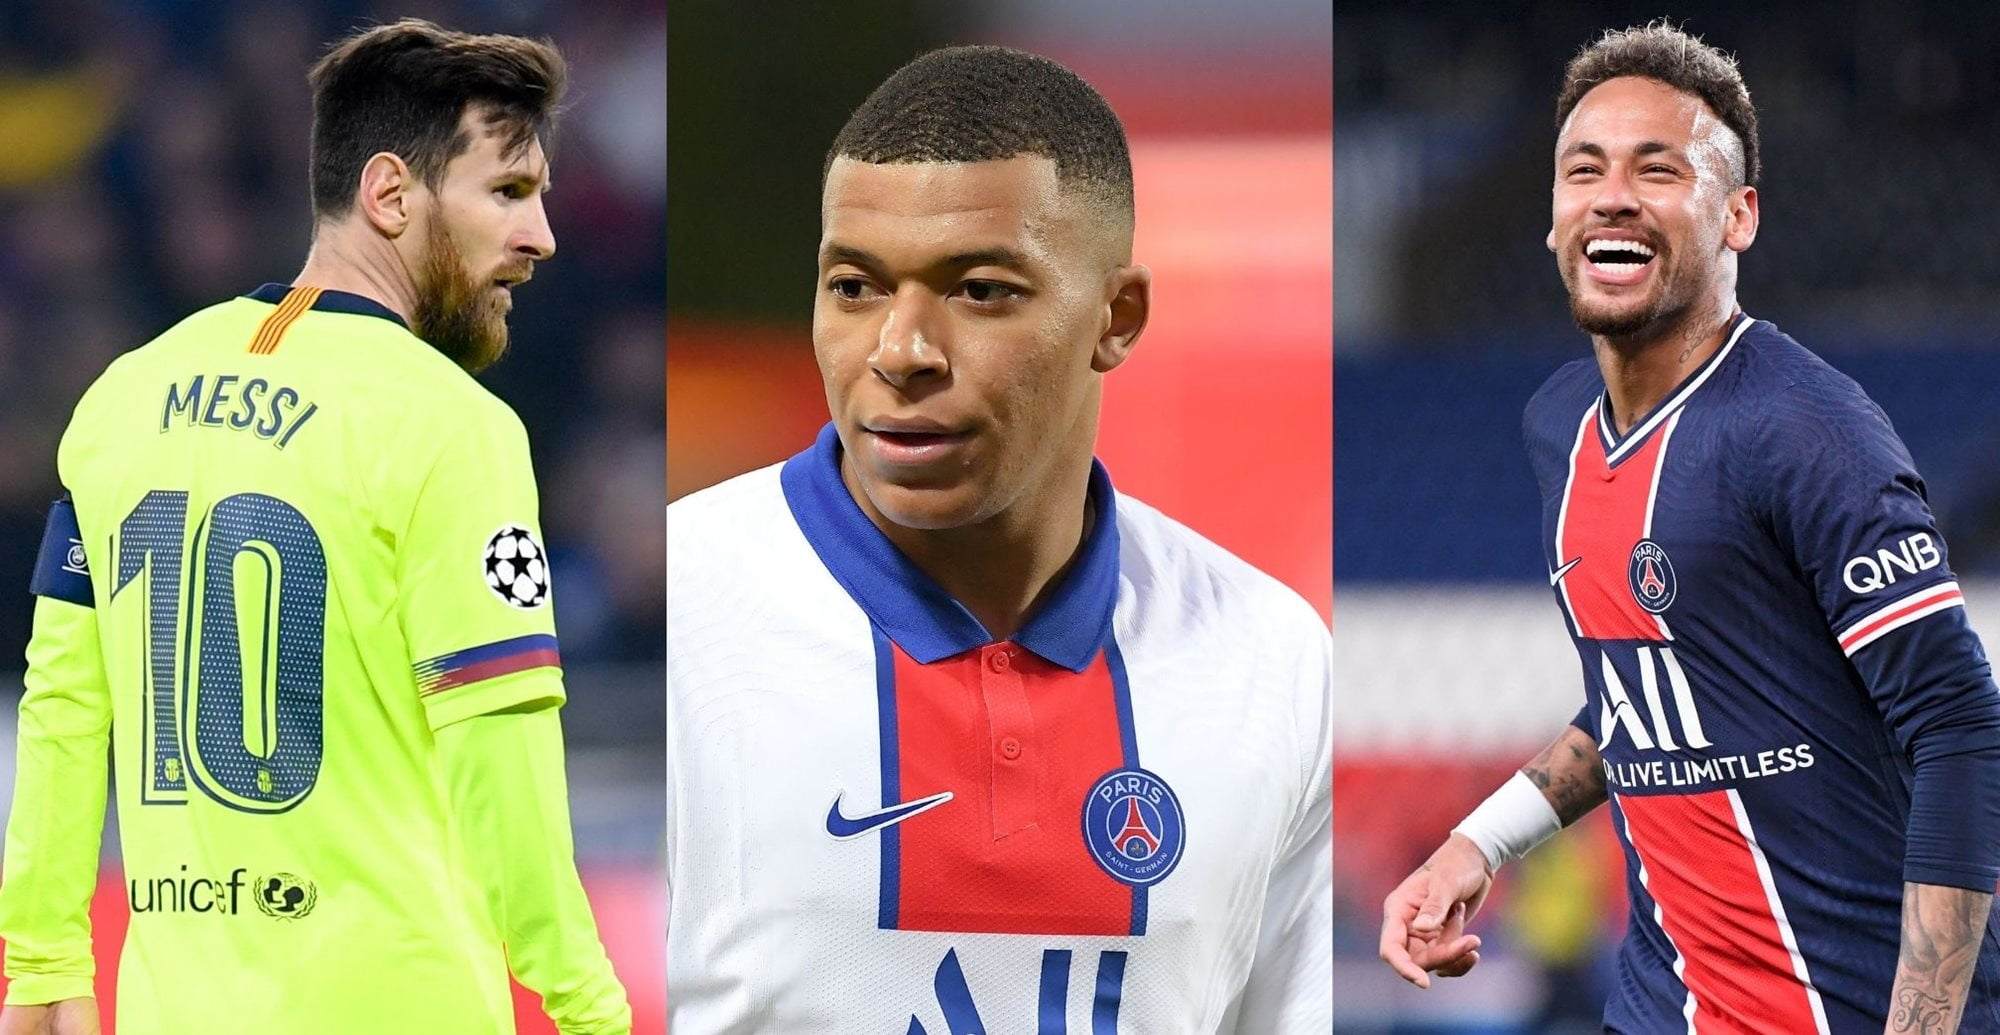 Where will Messi fit in at PSG?